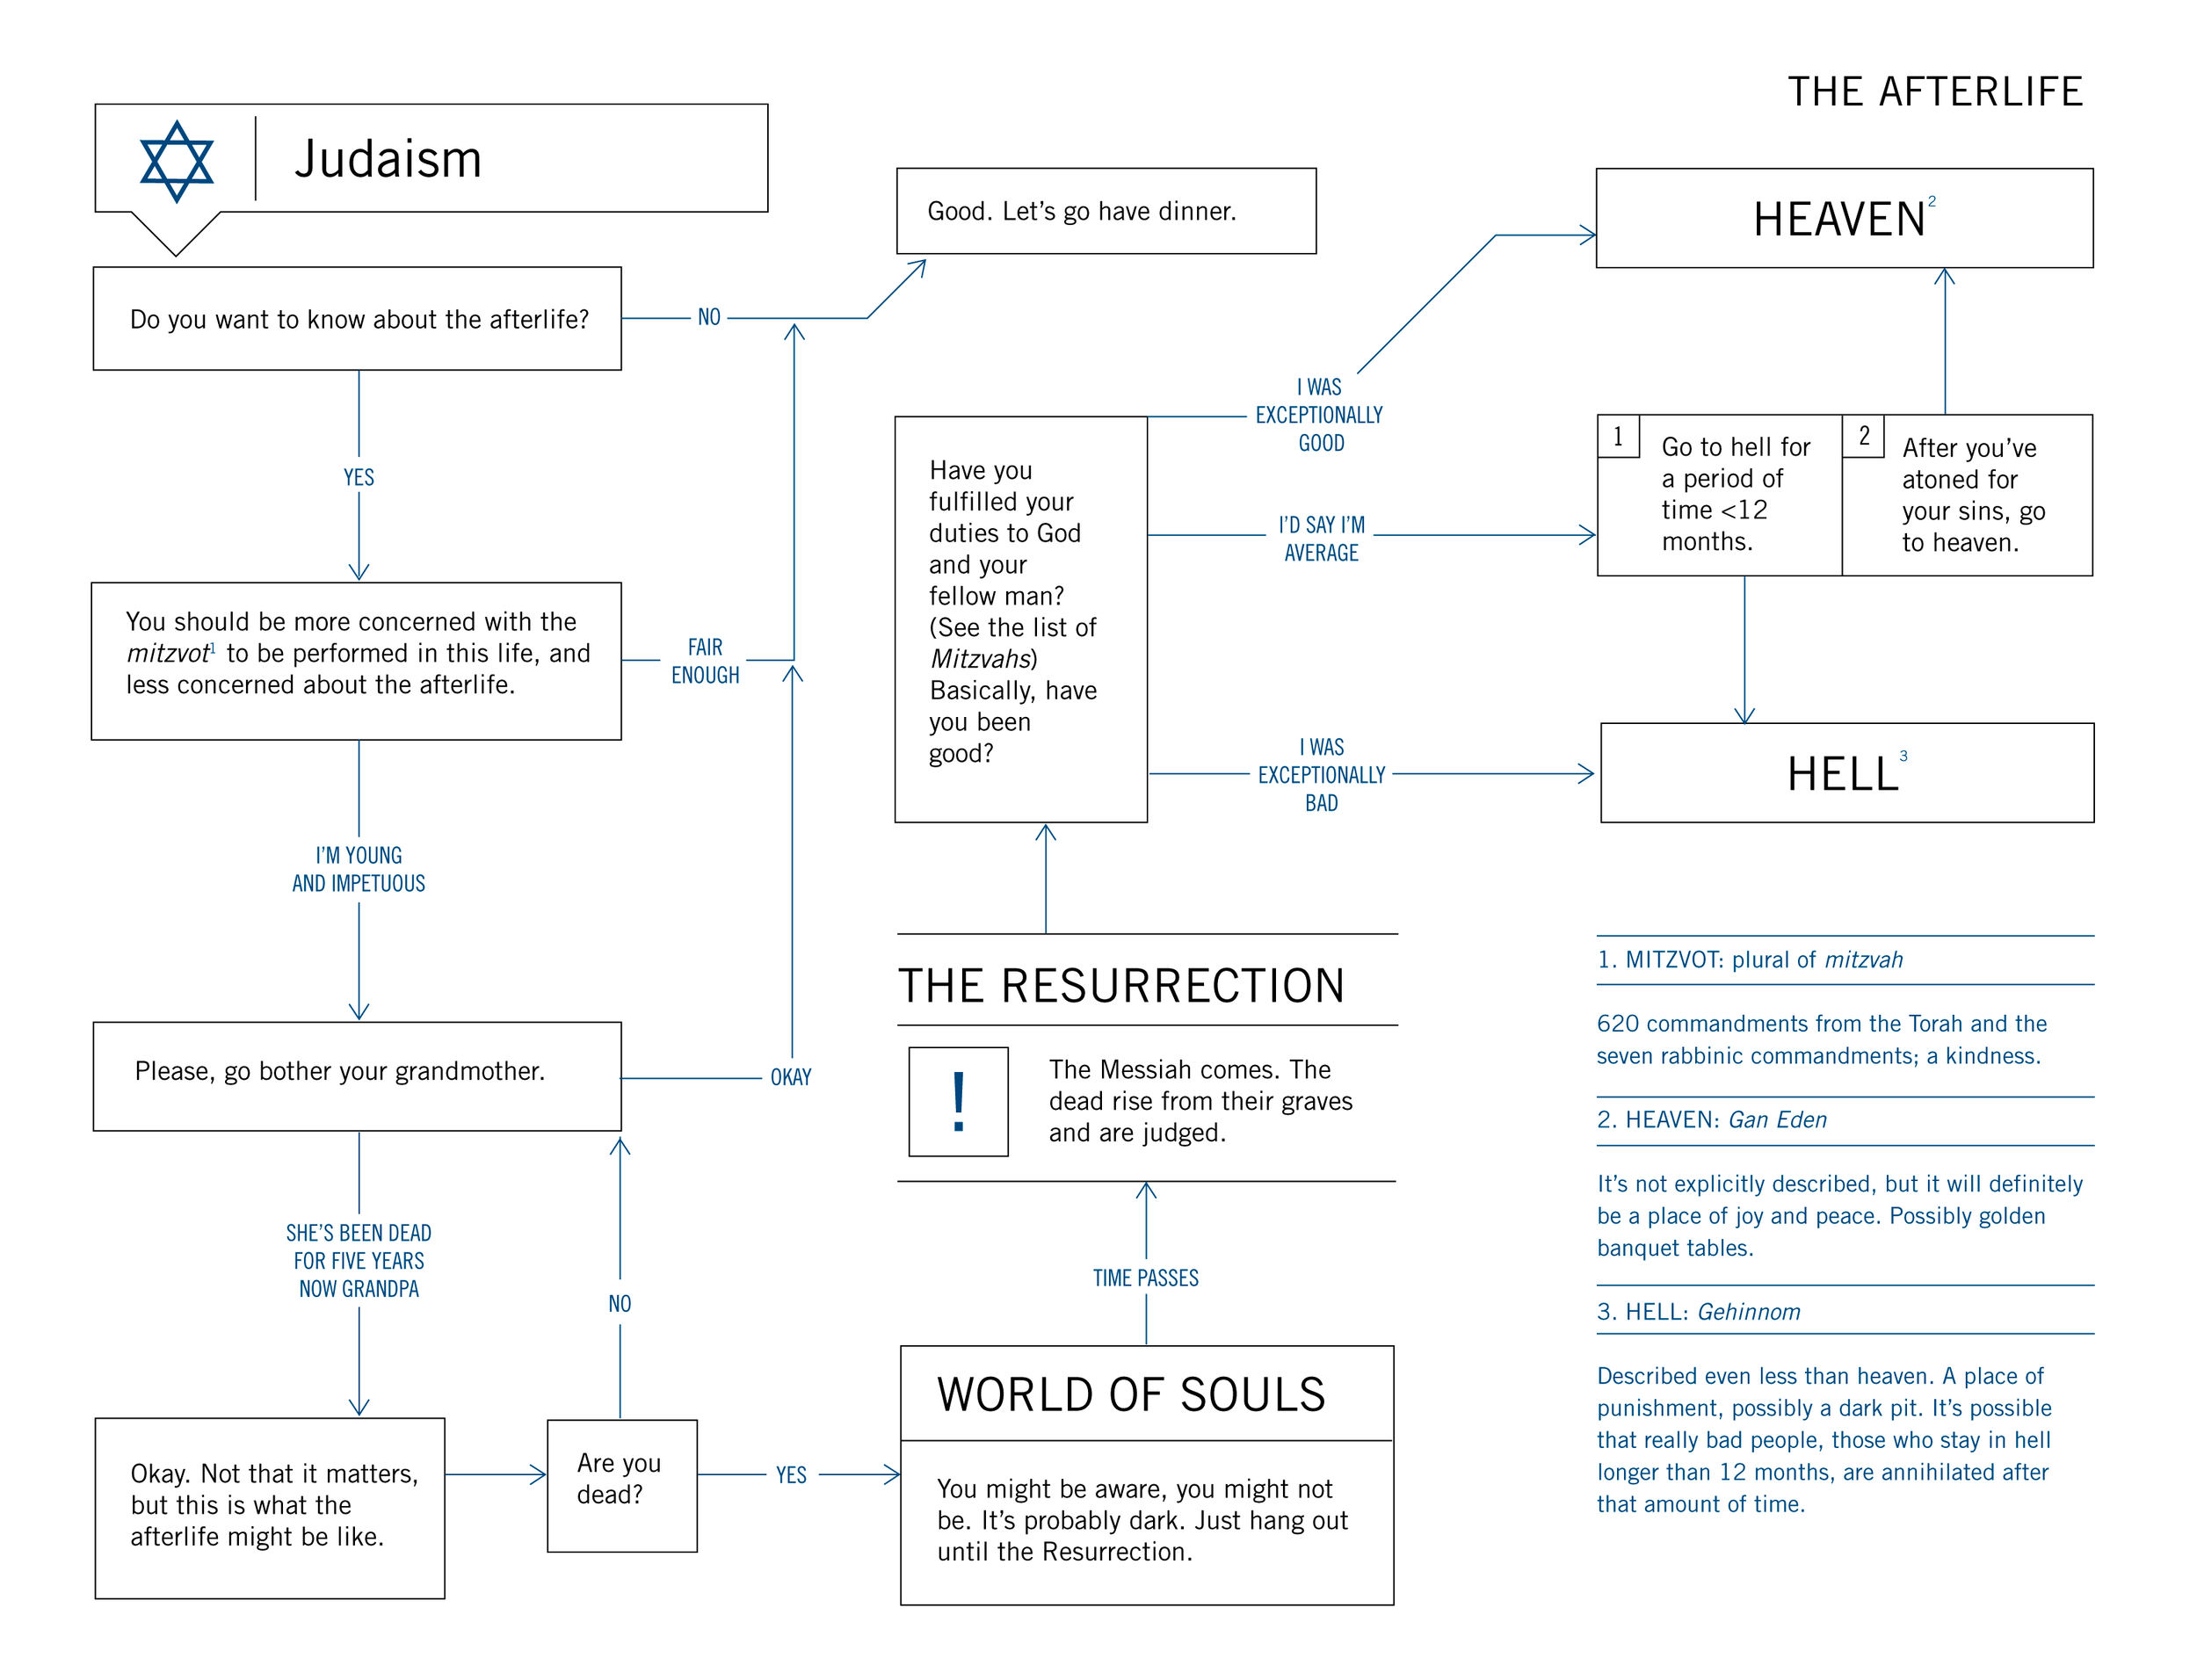 afterlife_judaism.png